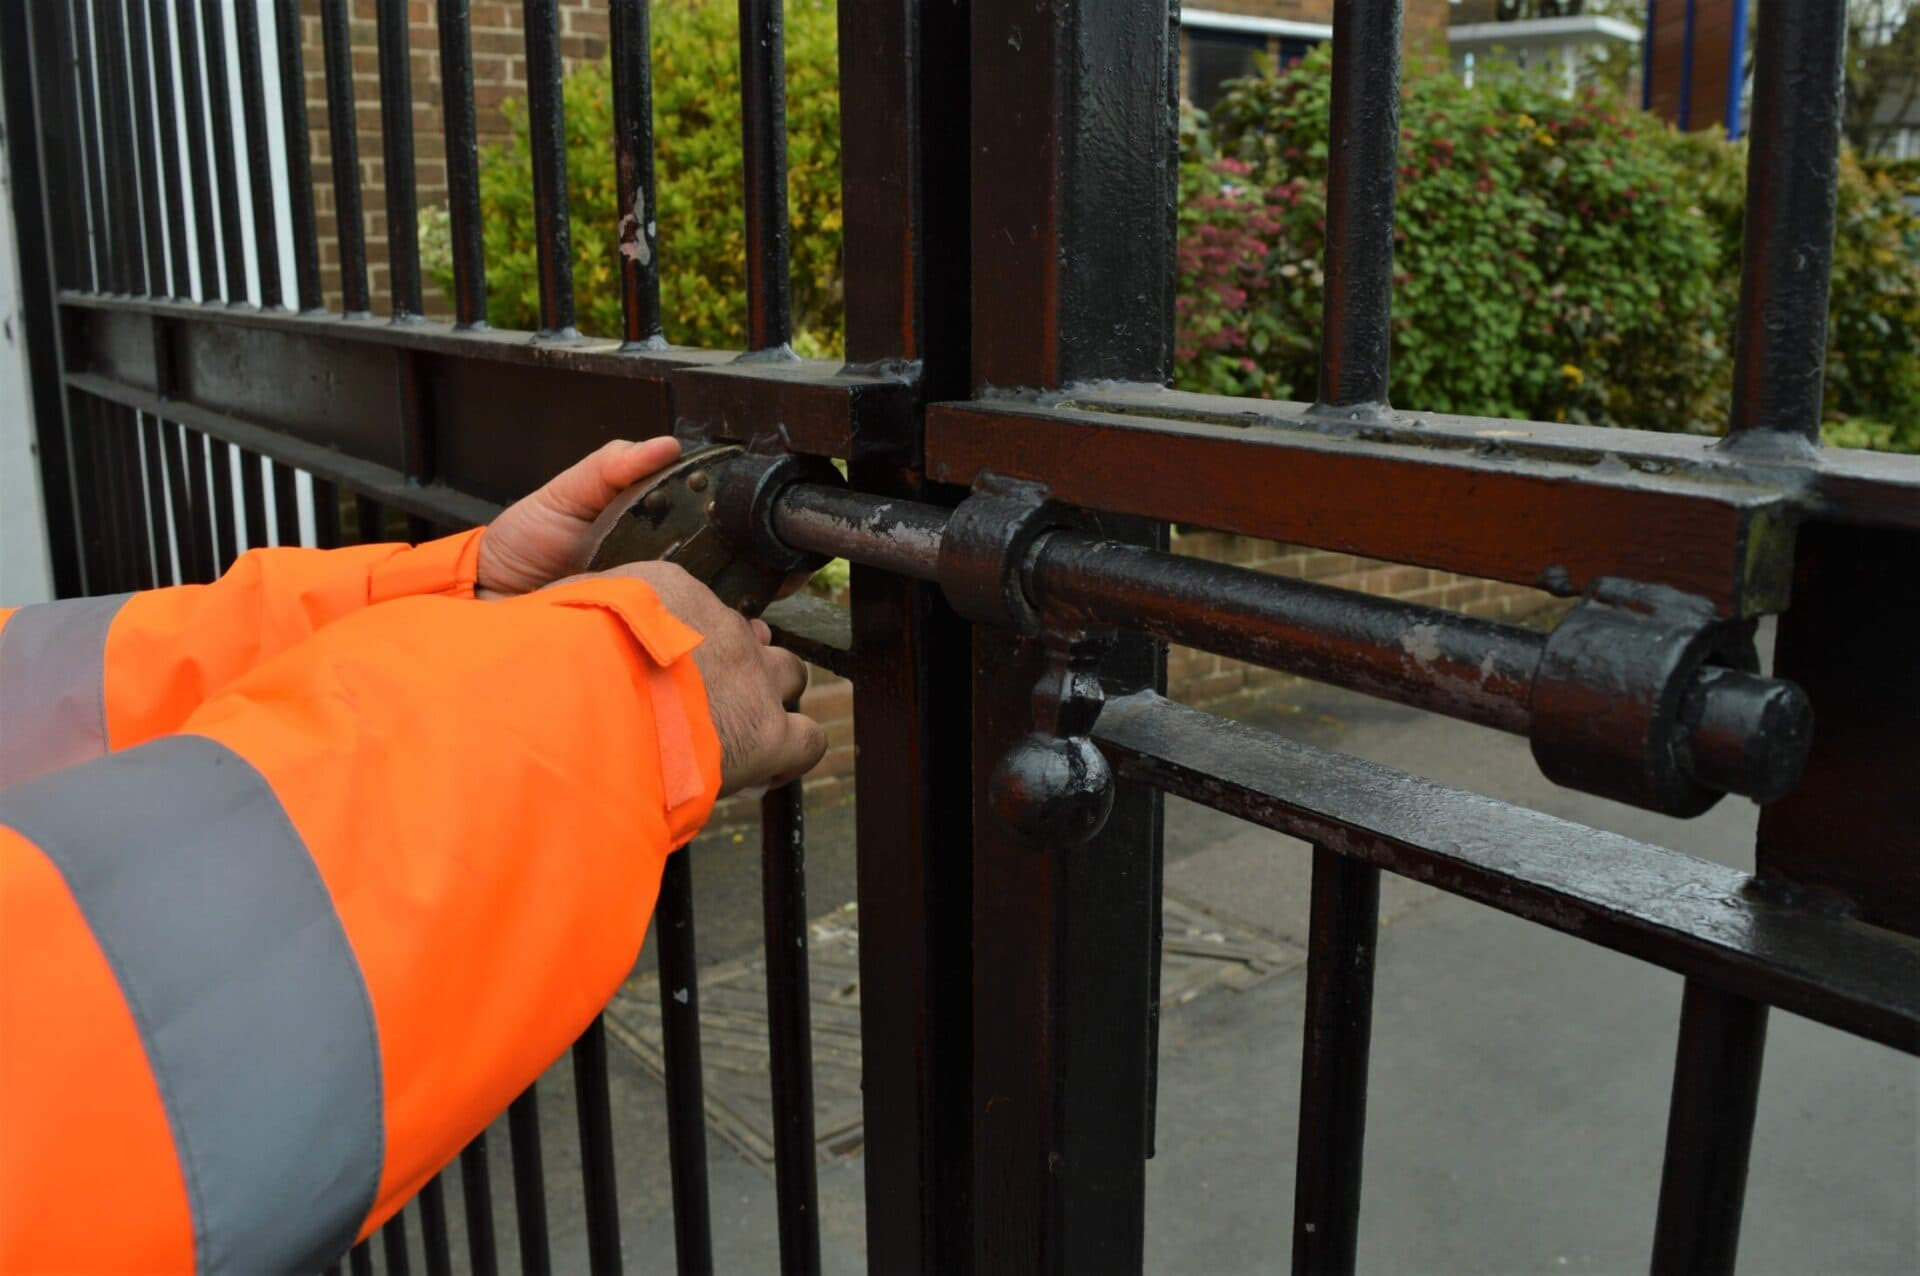 Security guard locking up property